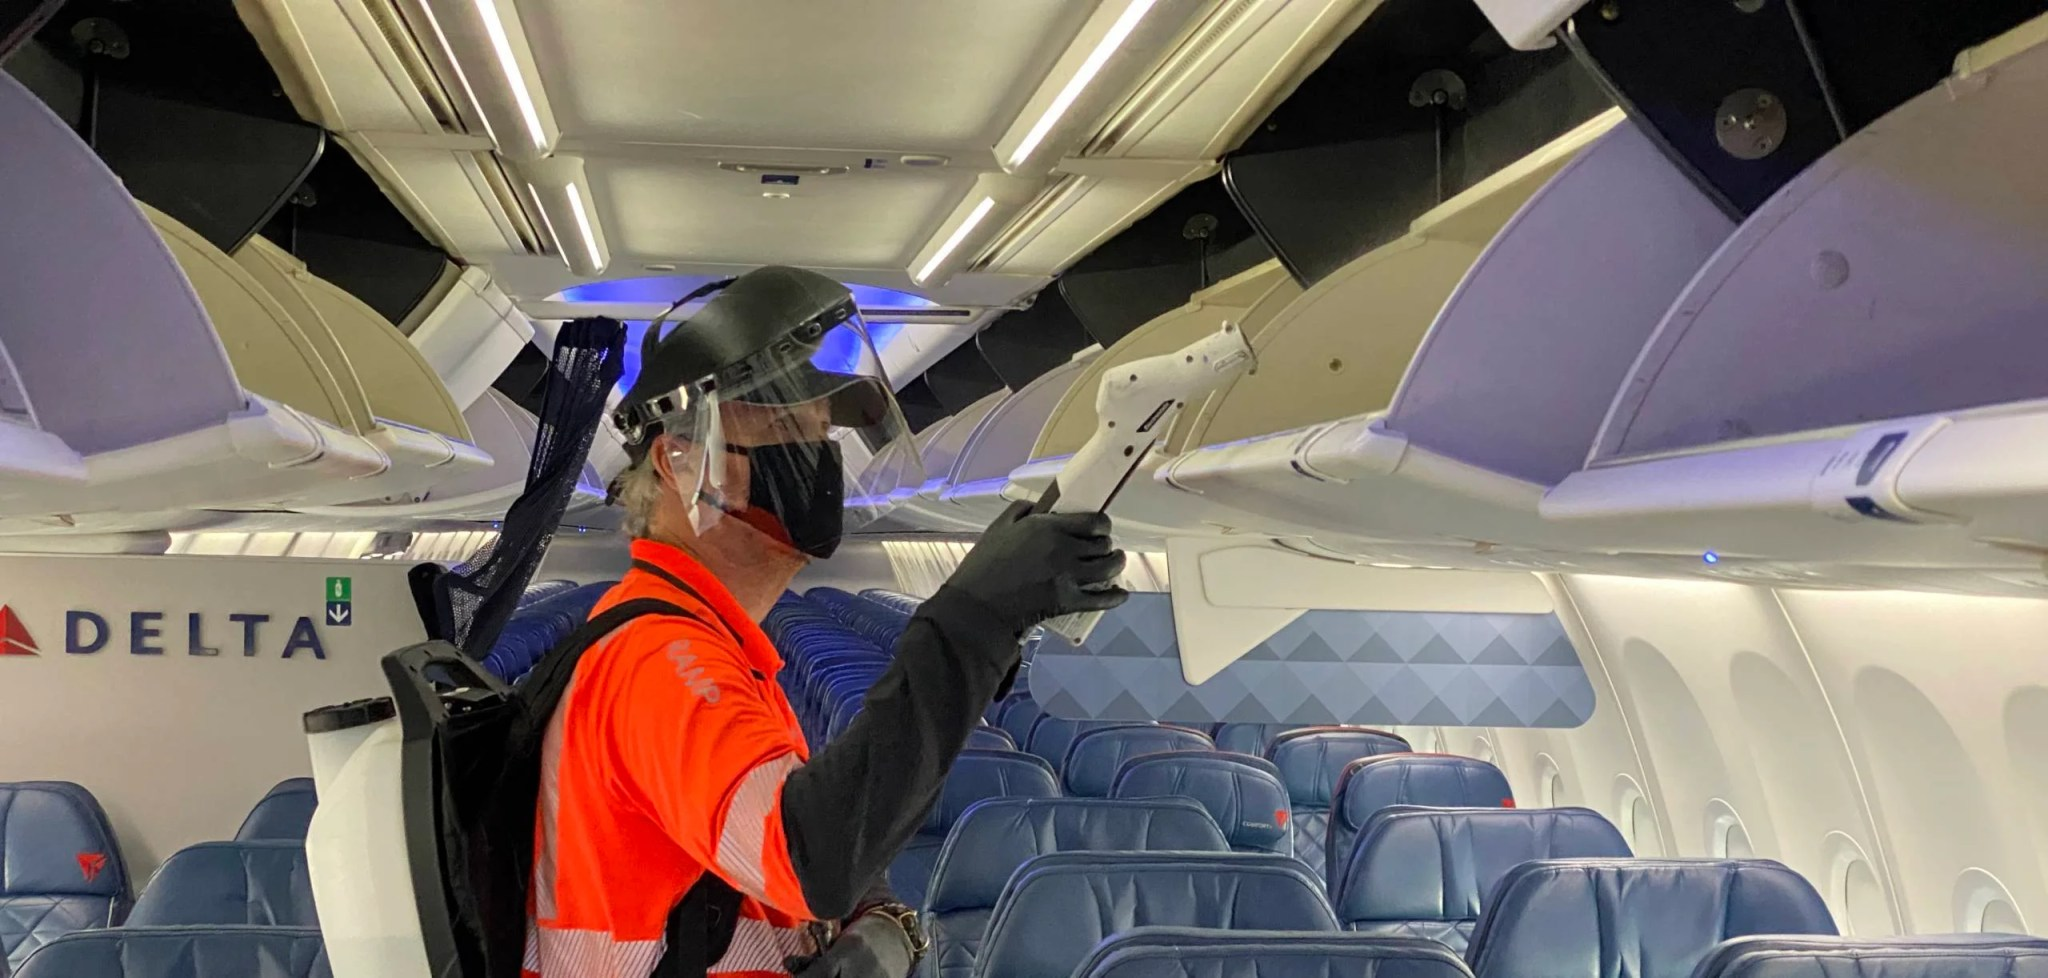 We got an inside look at how Delta is cleaning planes between every flight